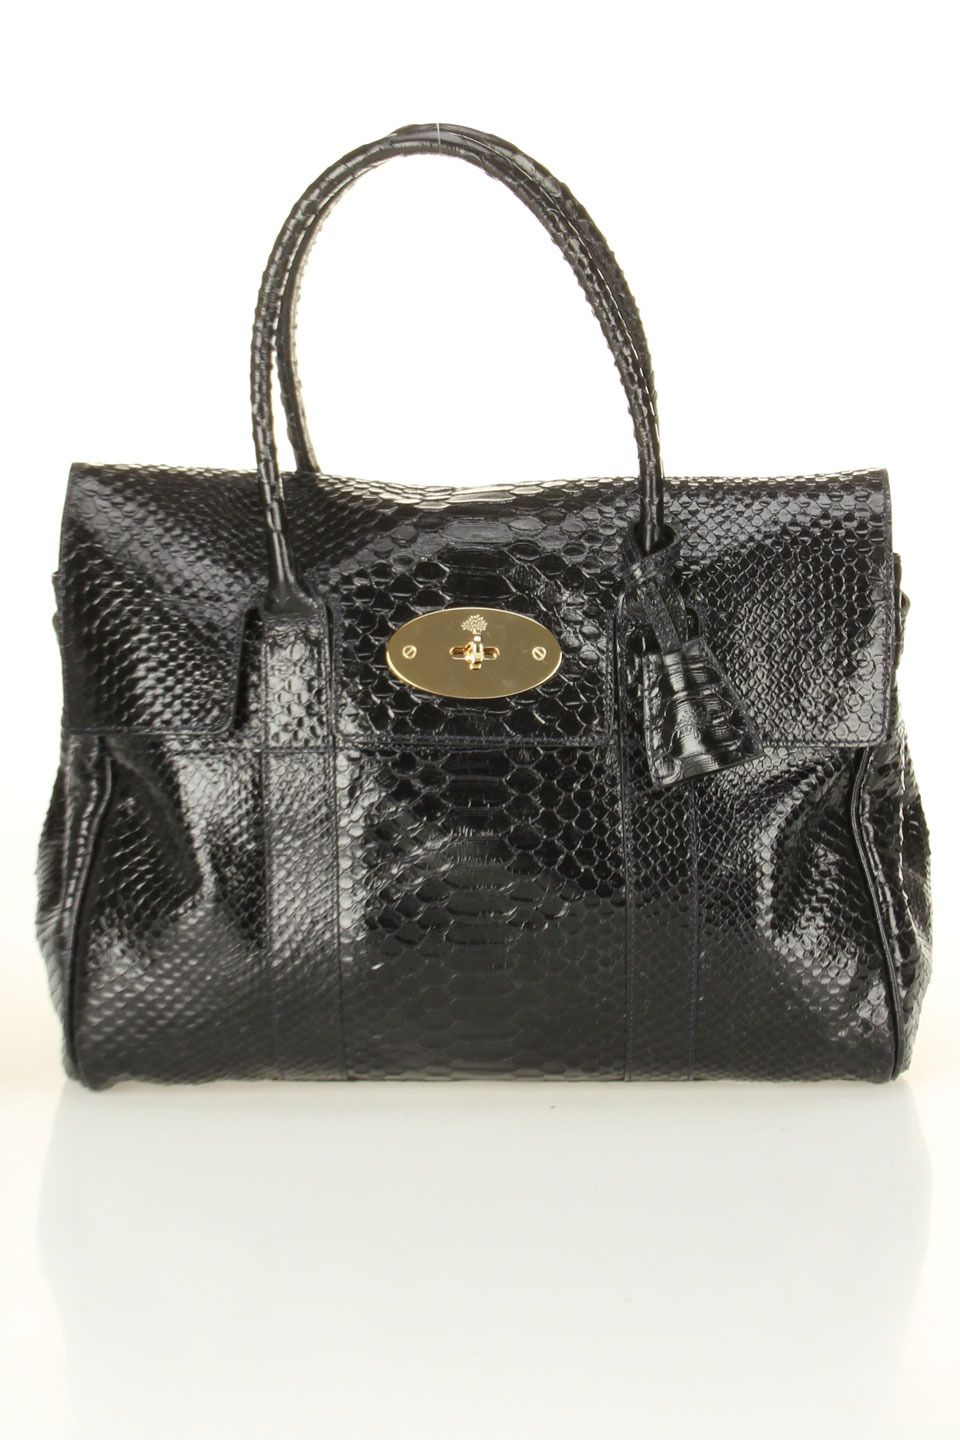 497532b947 Mulberry Bayswater Silky Snake Shine In Ink Blue.